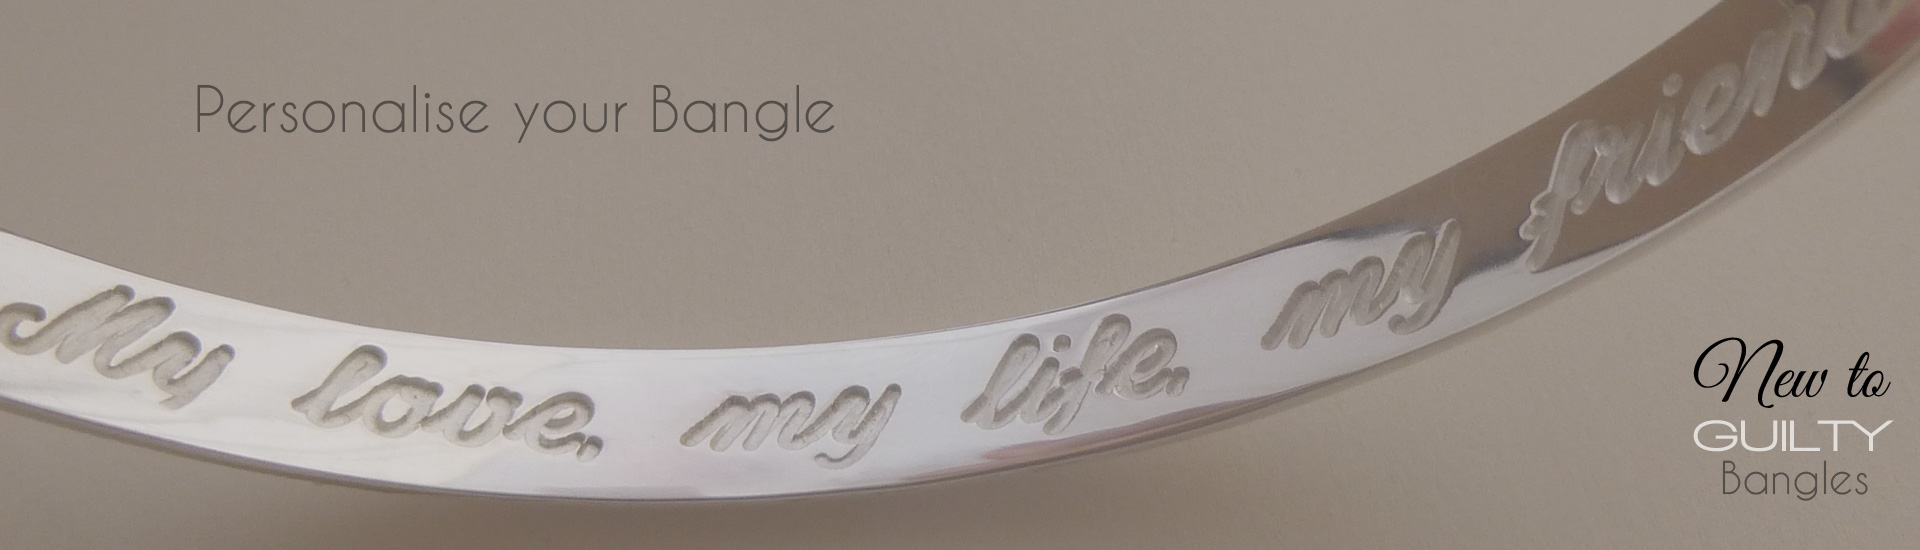 Engraves ladies sterling silver bangles from Guilty